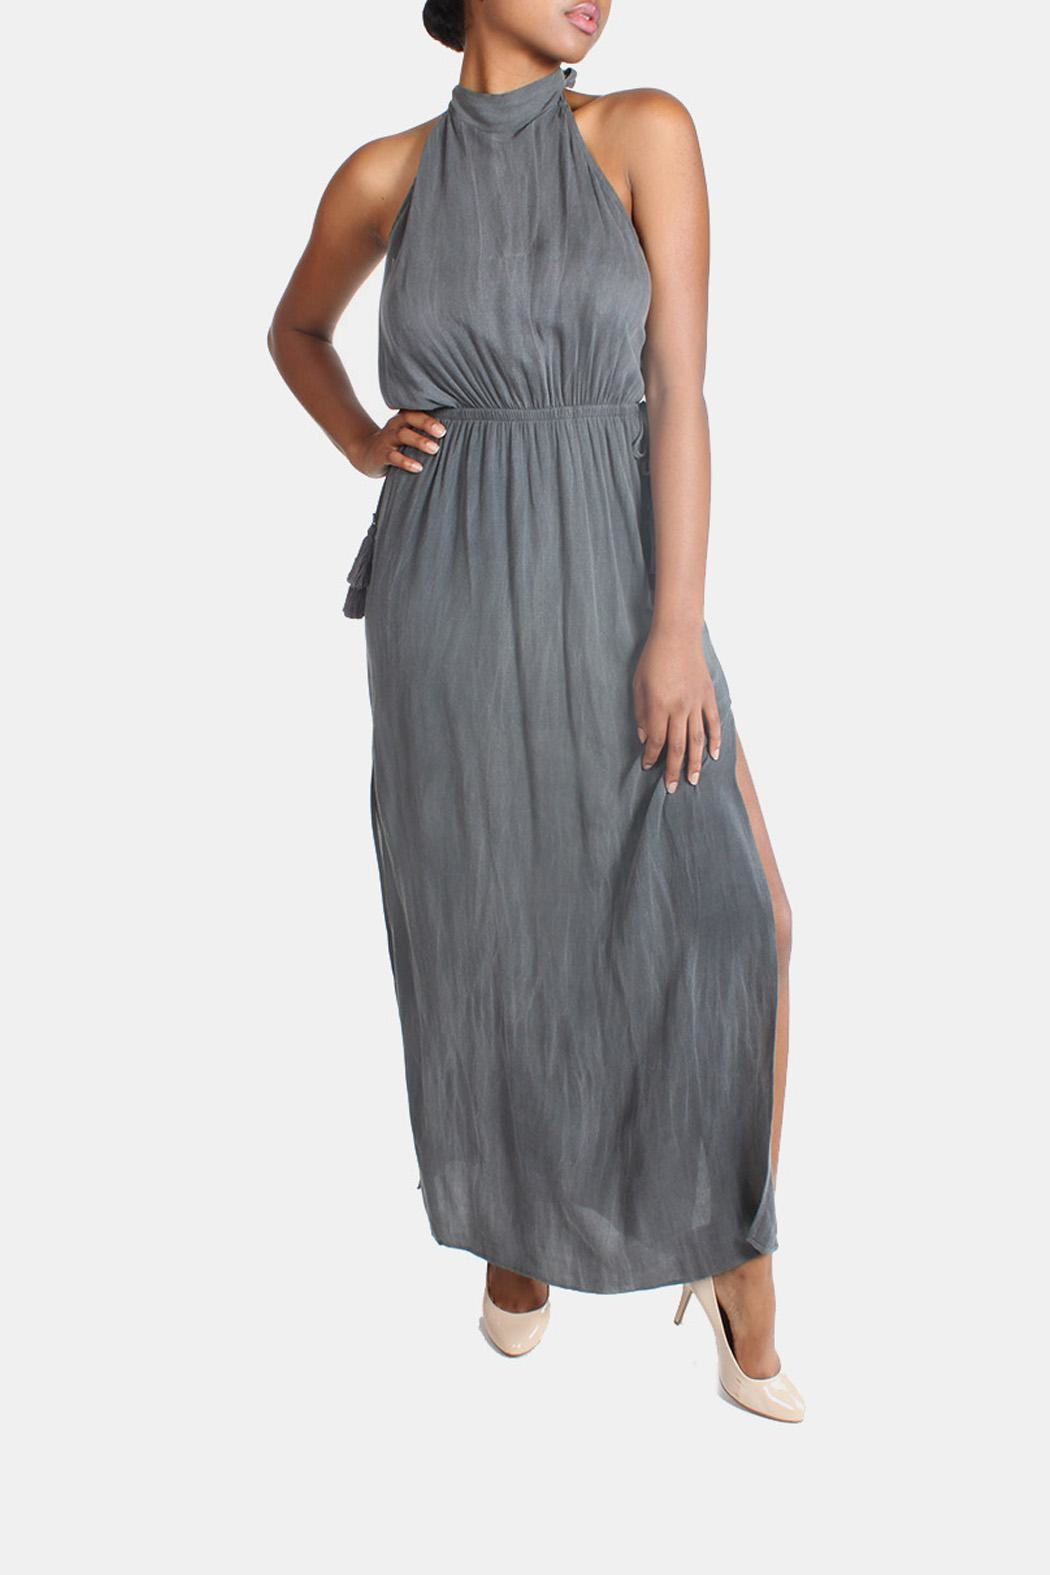 Sage Charcoal High-Neck Maxi-Dress - Main Image